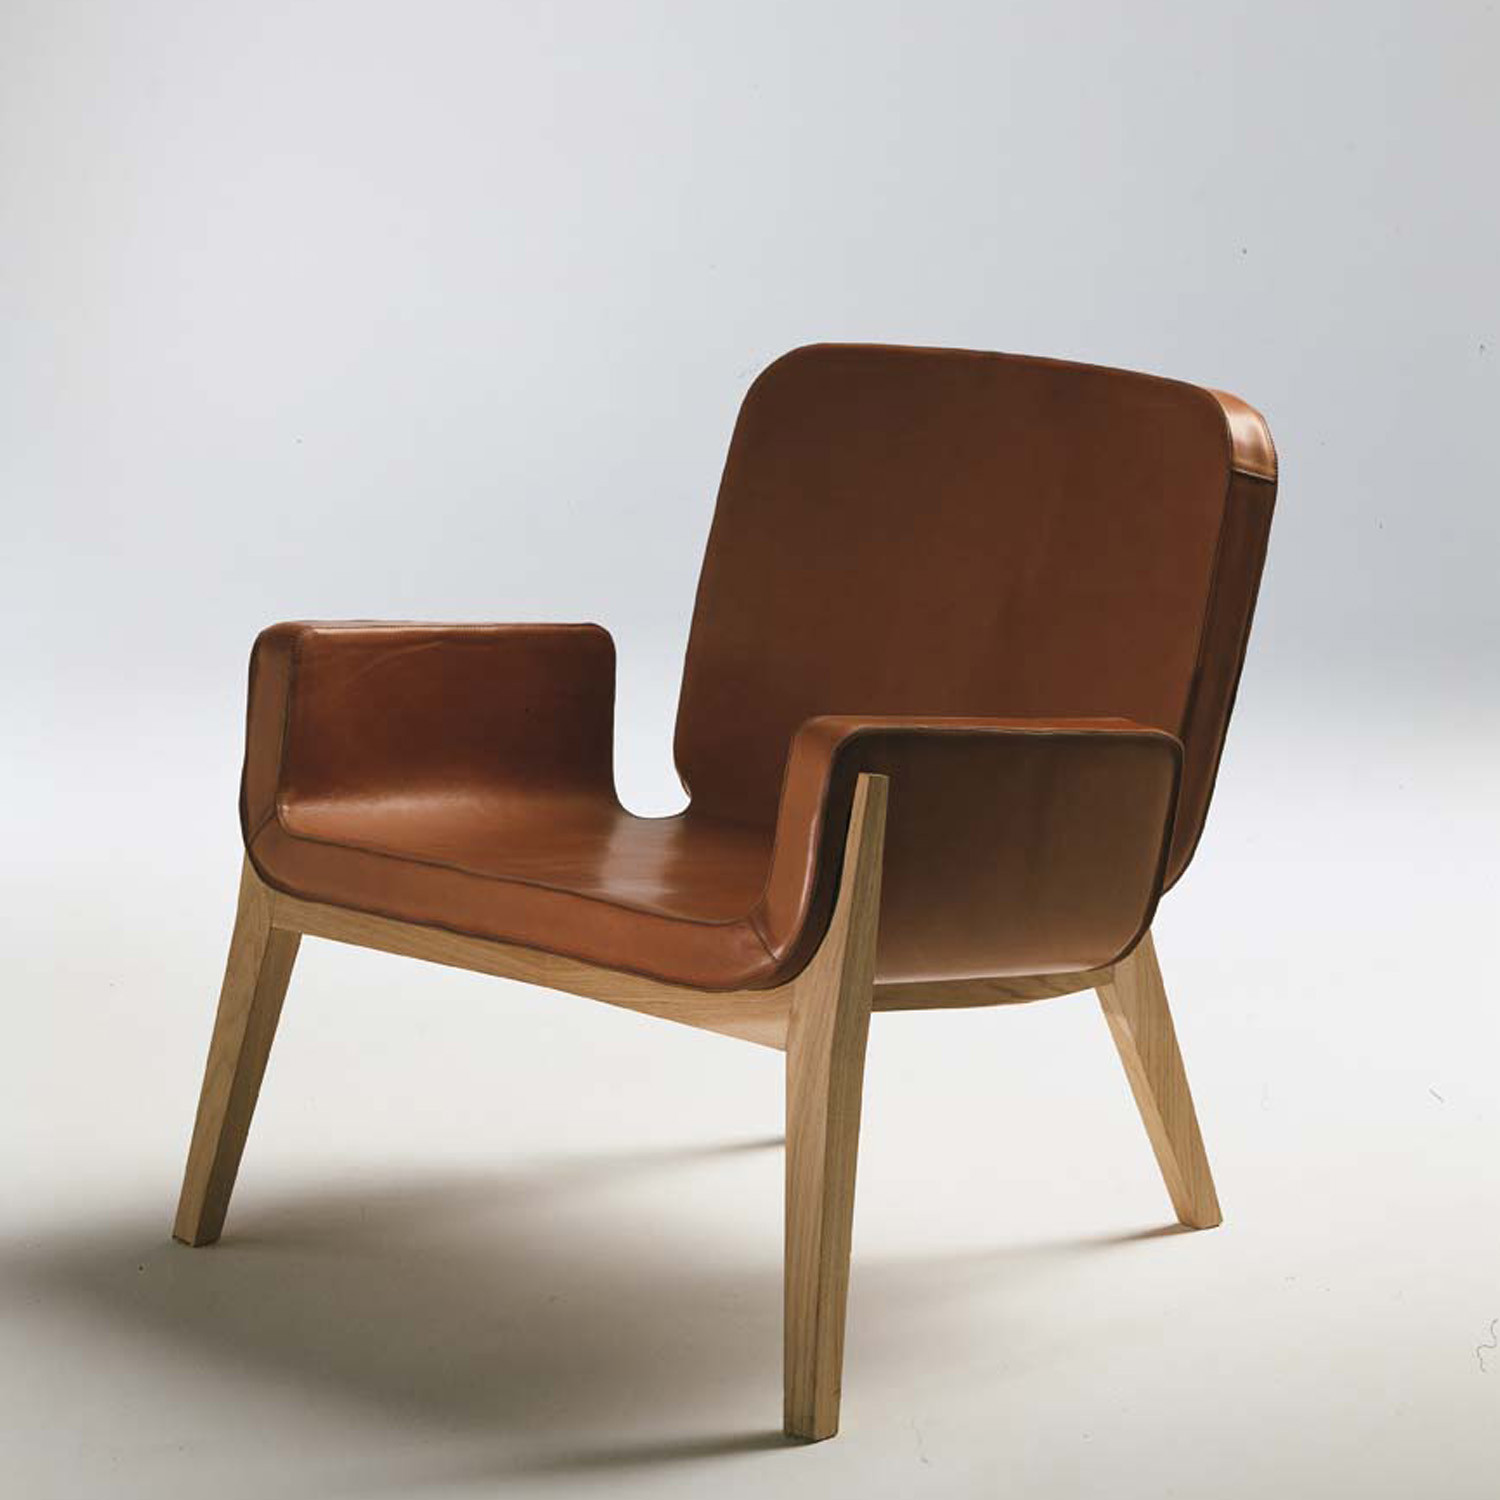 Jockey Chair by Poltrona Frau